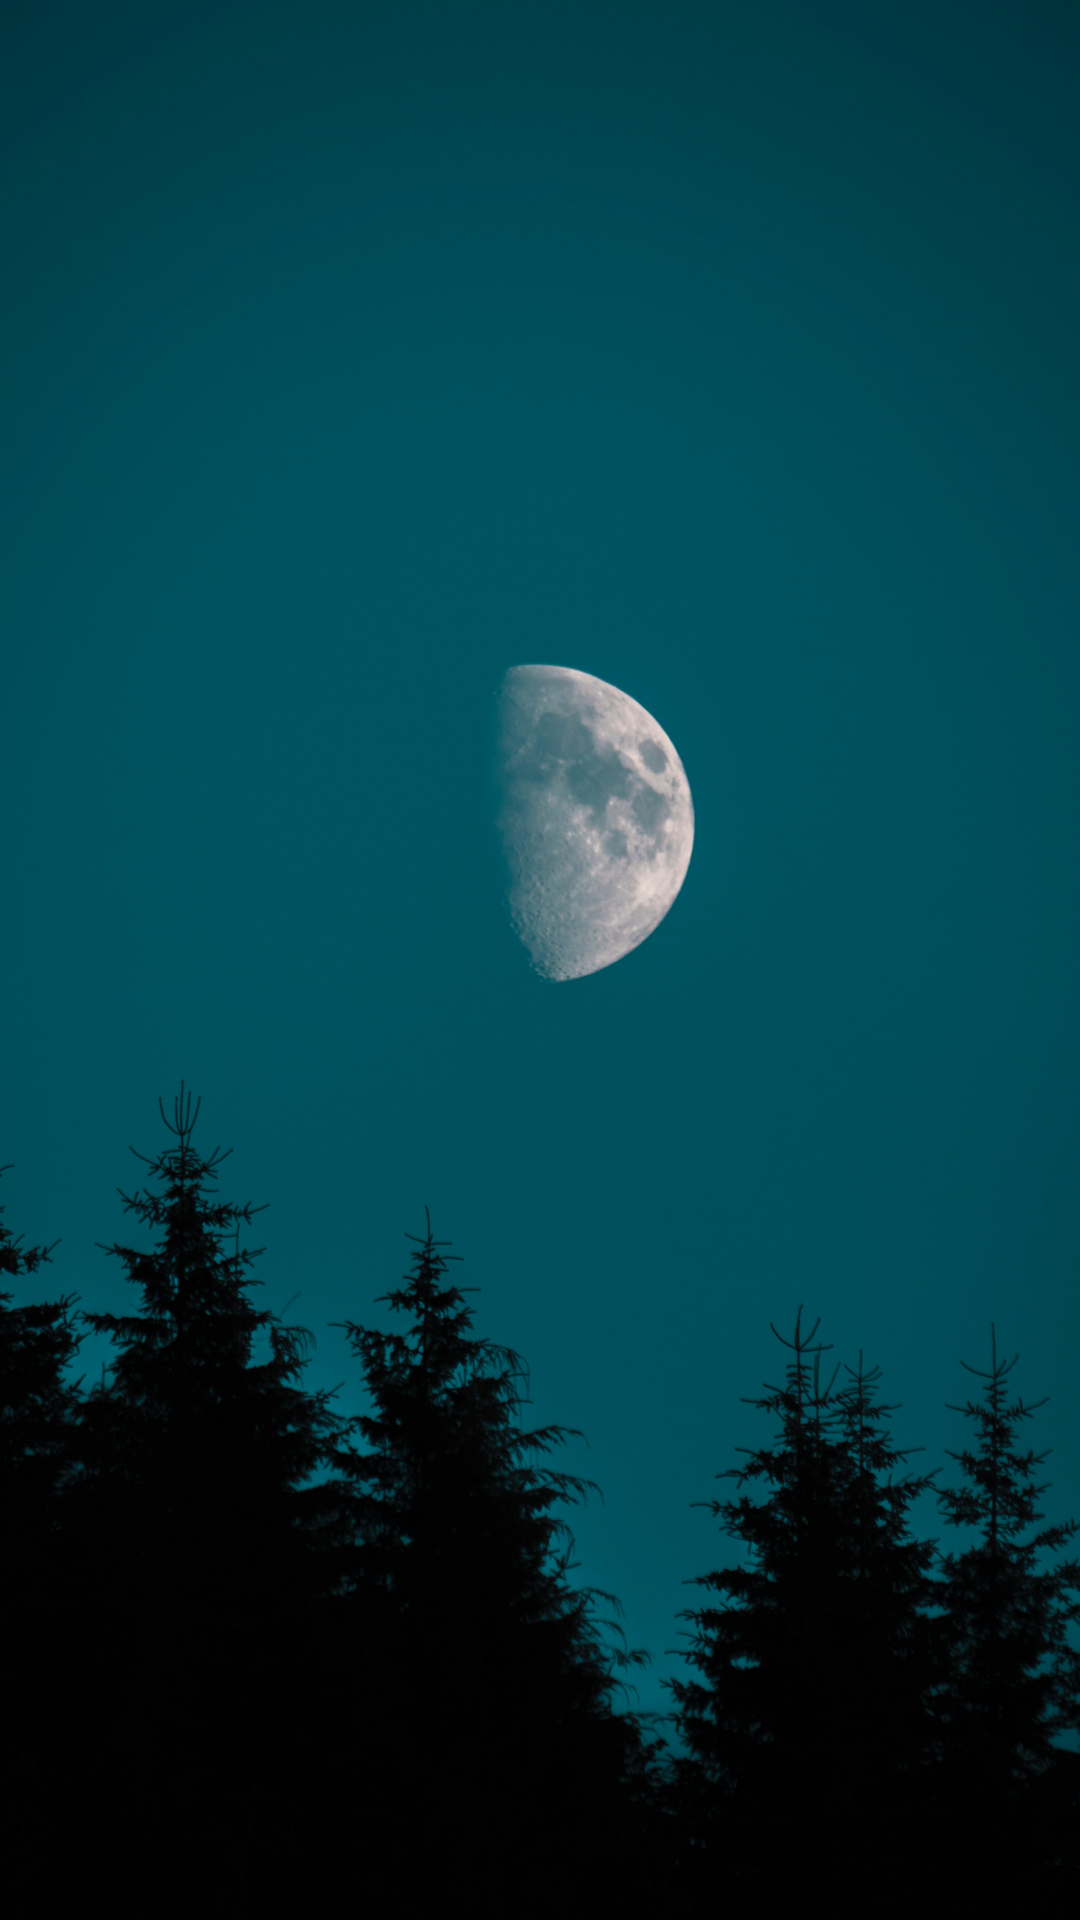 iPhone WallpaperHalf Moon Over Pine 3Wallpapers : notre sélection de fonds d'écran du 31/01/2018